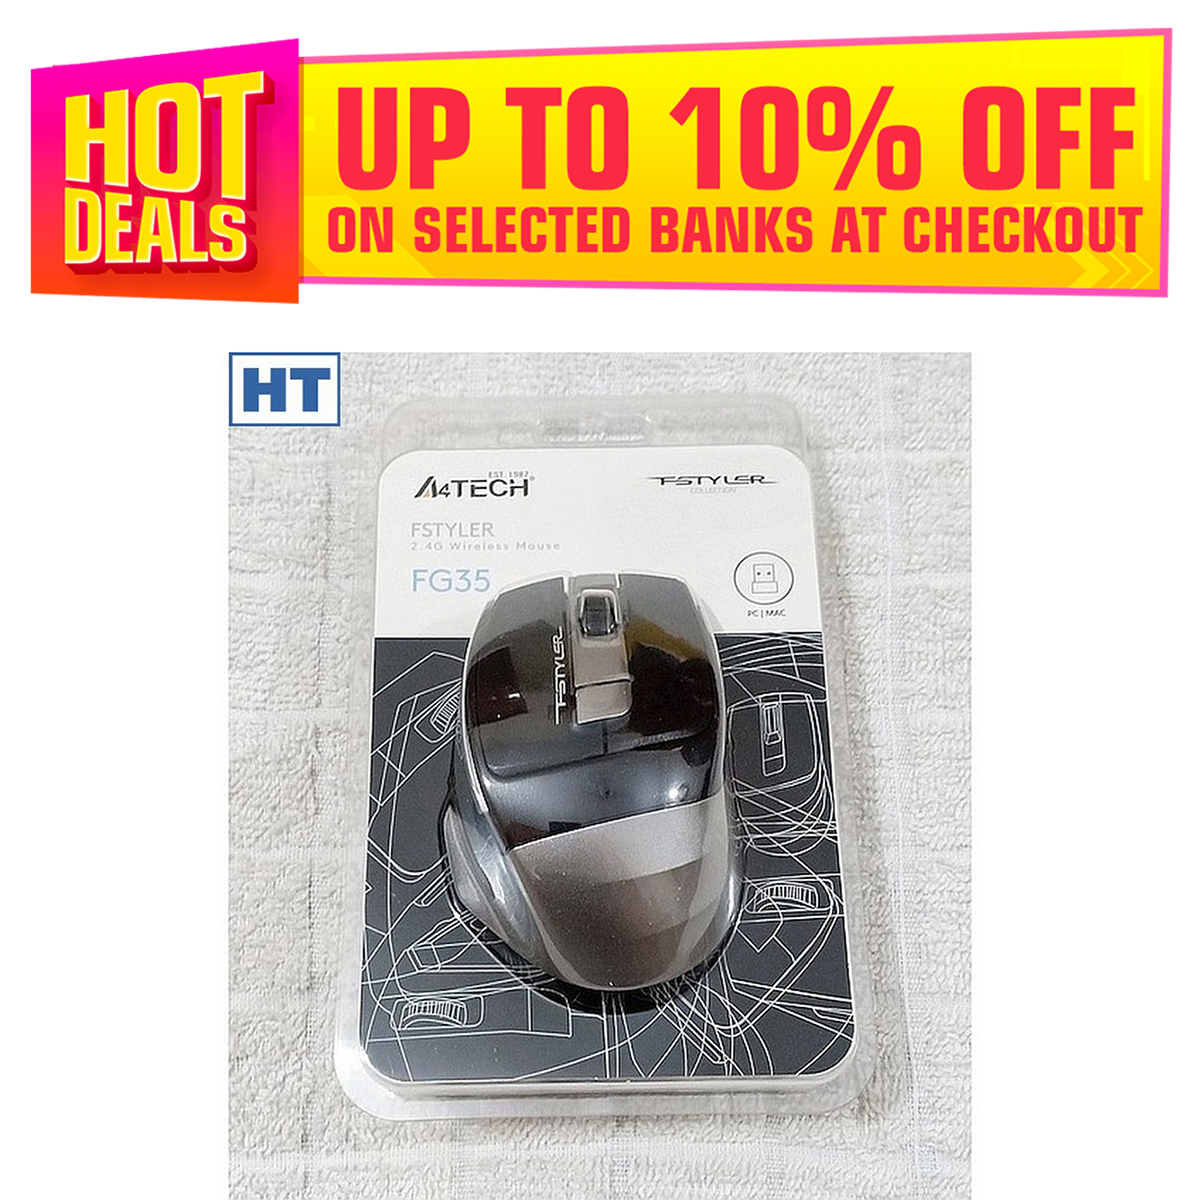 A4Tech Fstyler Wireless Mouse FG35 - 6 Buttons - 2000 dpi - Beautiful (Grey/Silver) - High Quality - Original with S/N